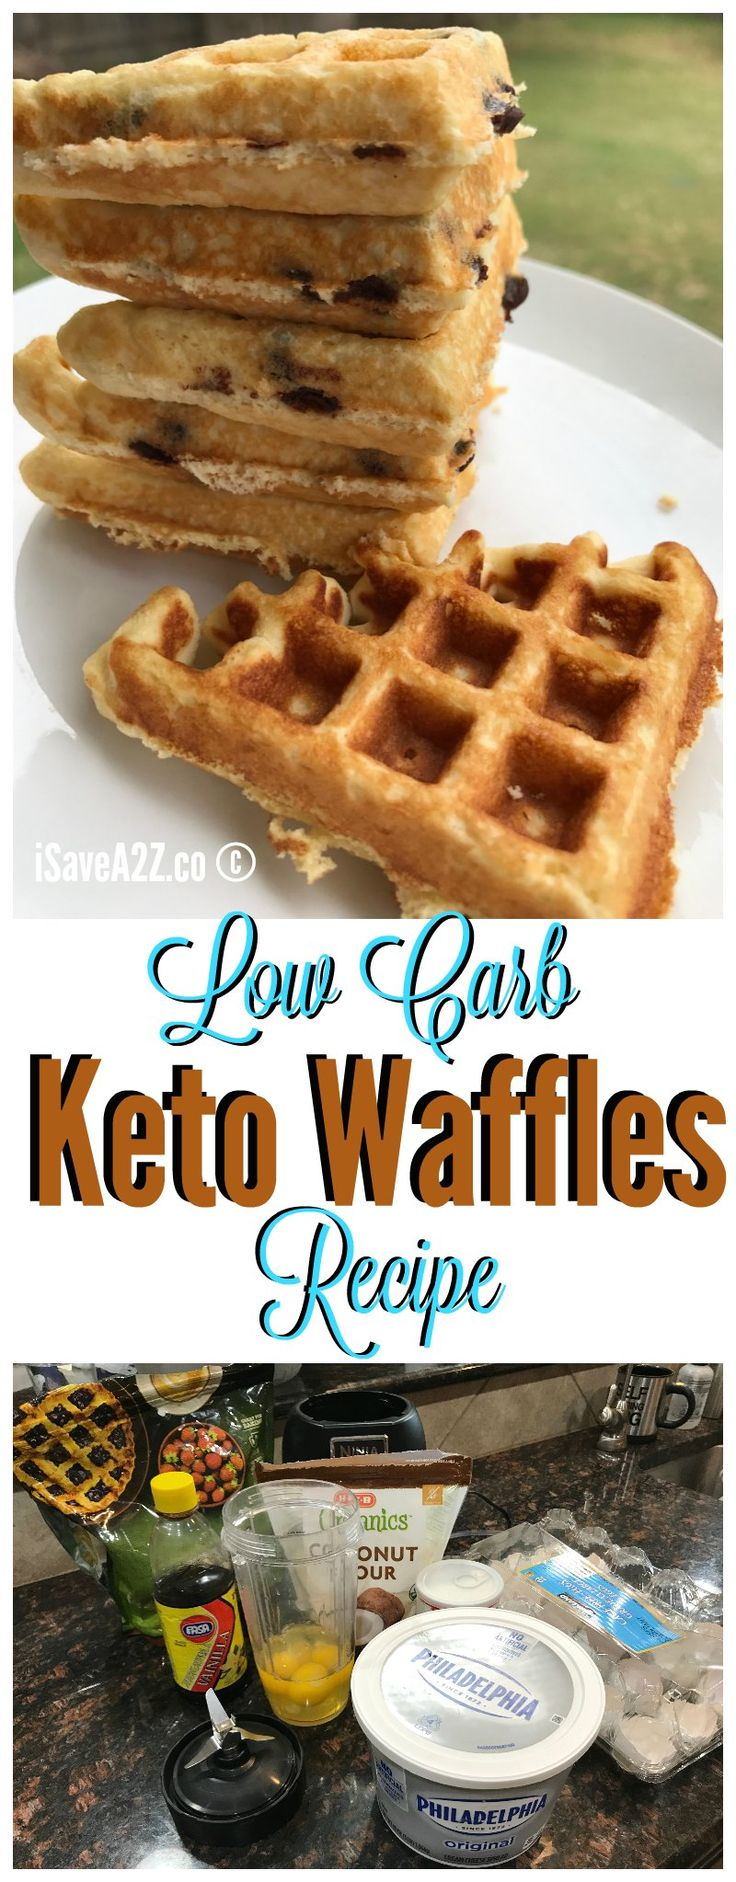 Low Carb Keto Fluffy waffles recipe - fluffy keto waffles!!!  BEST EVER!